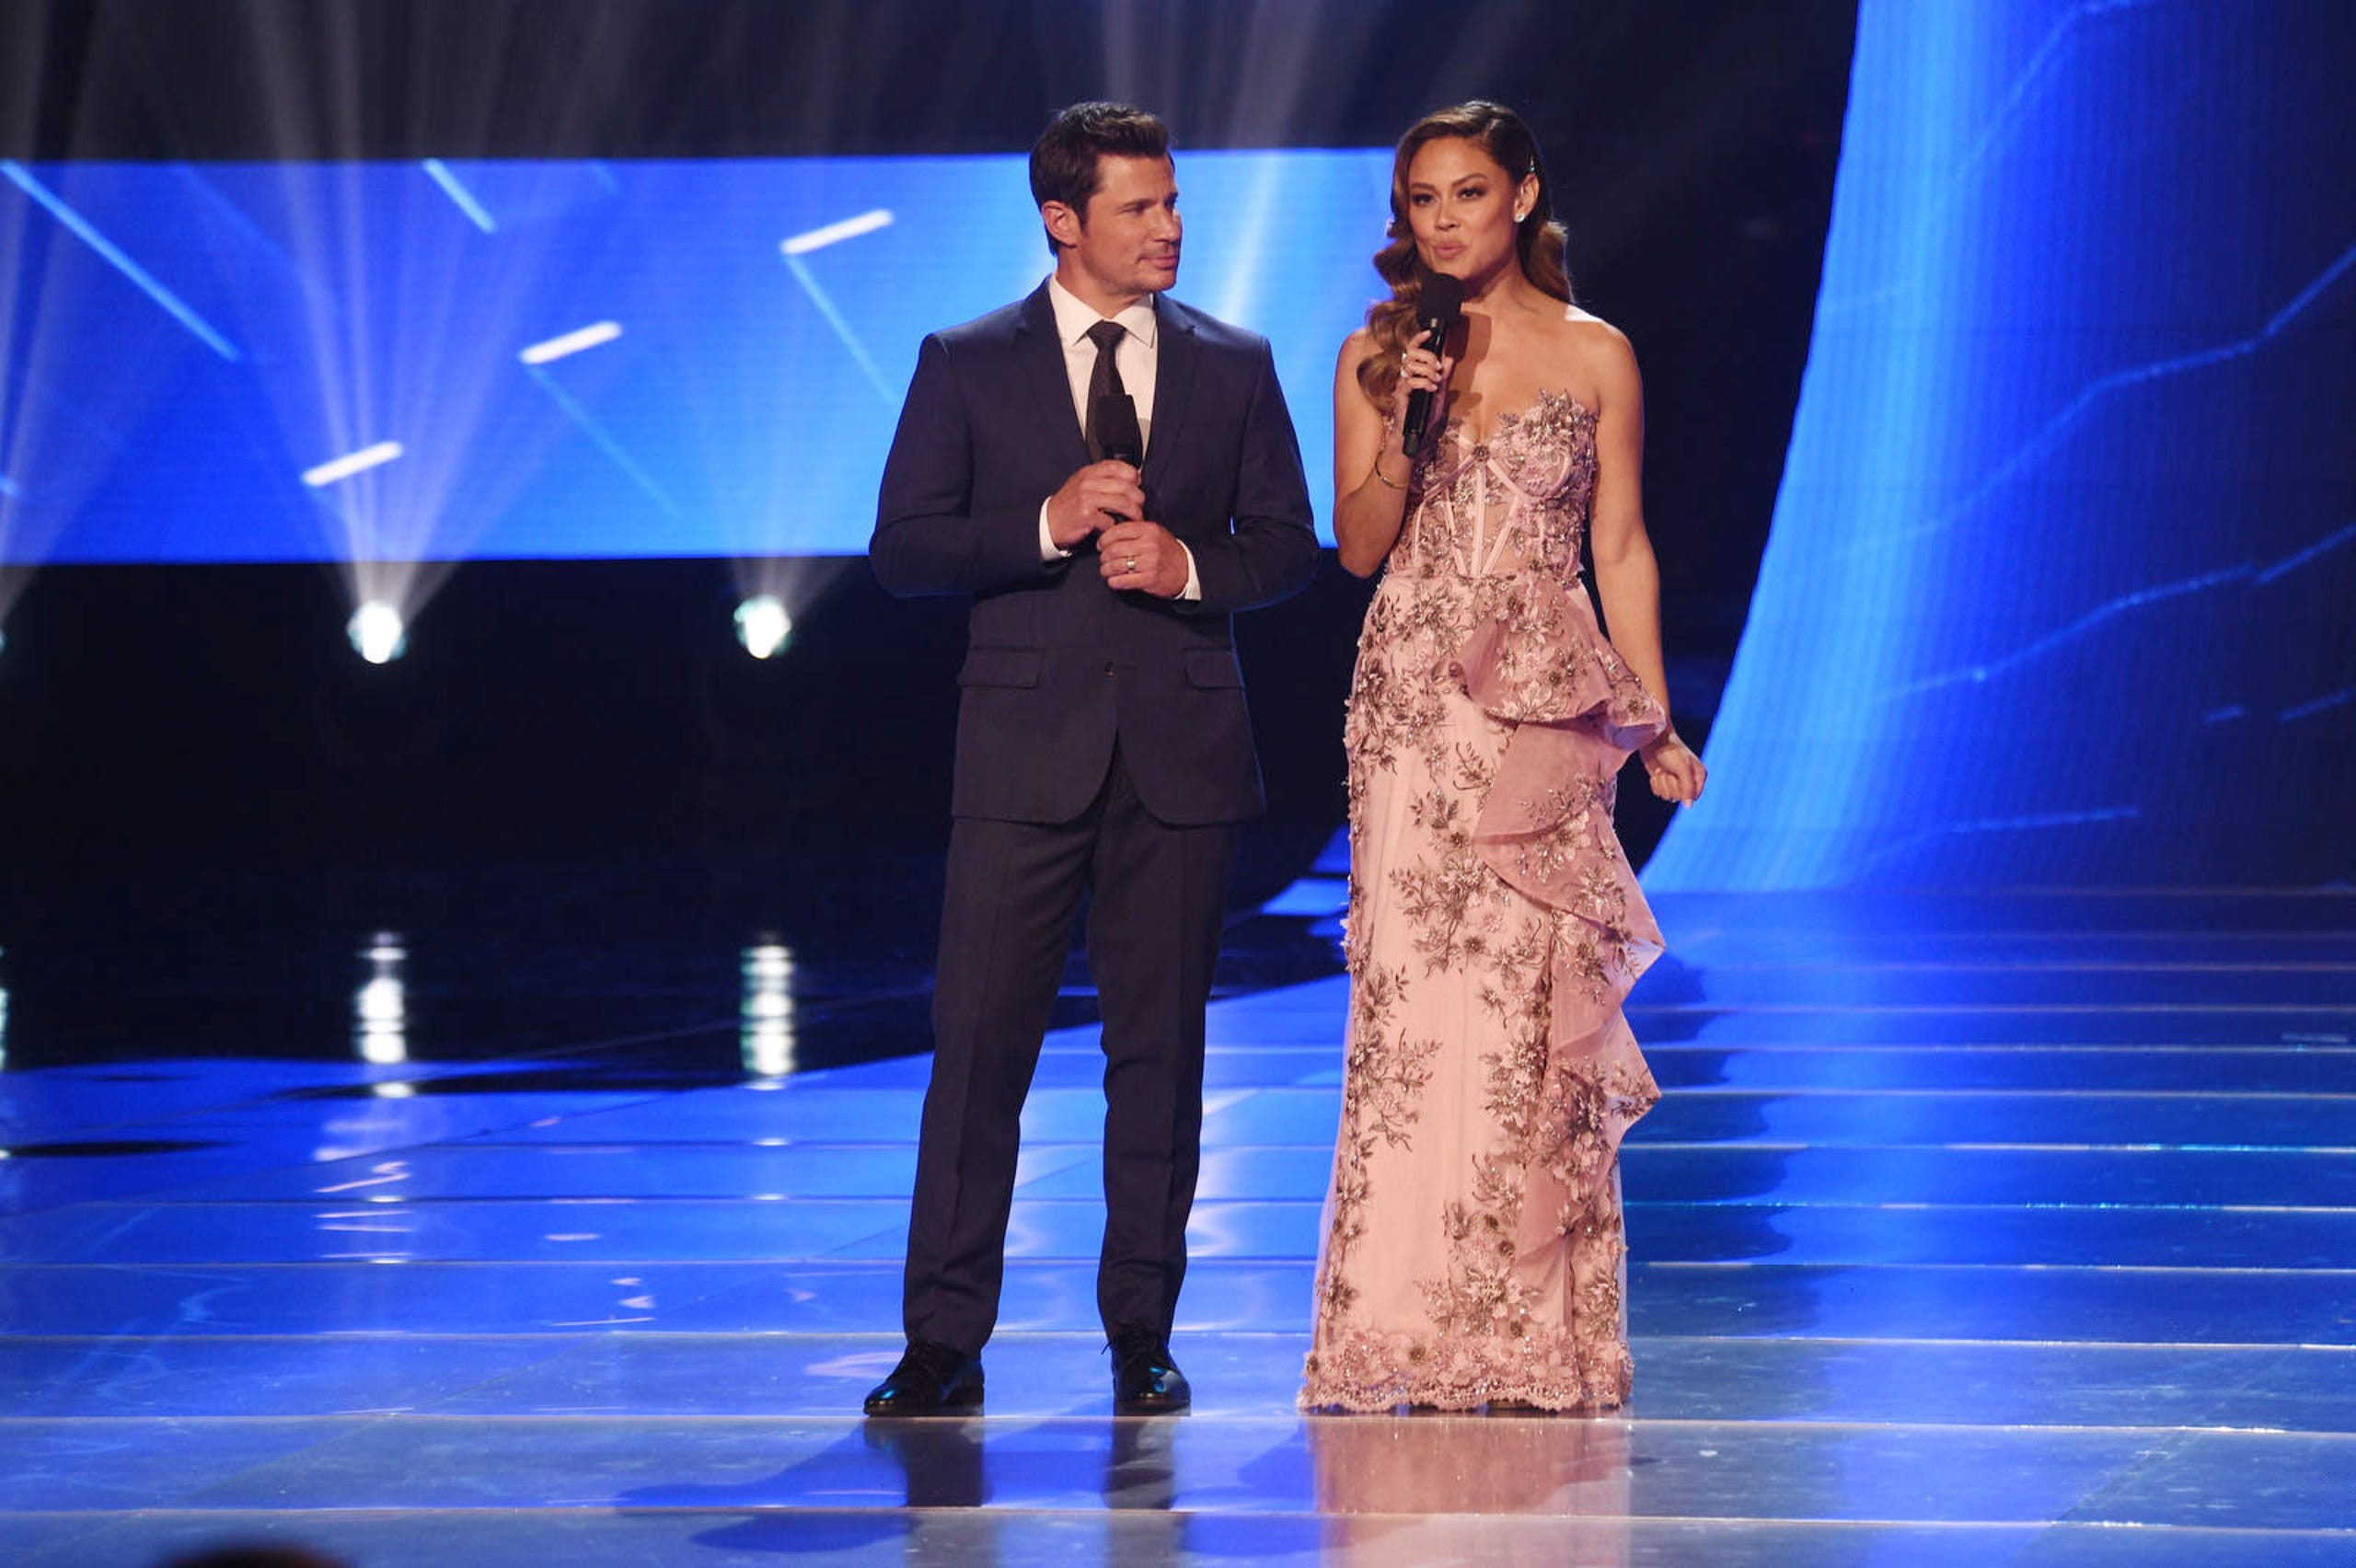 Co-hosts Nick and Vanessa Lachey during Miss USA 2019.